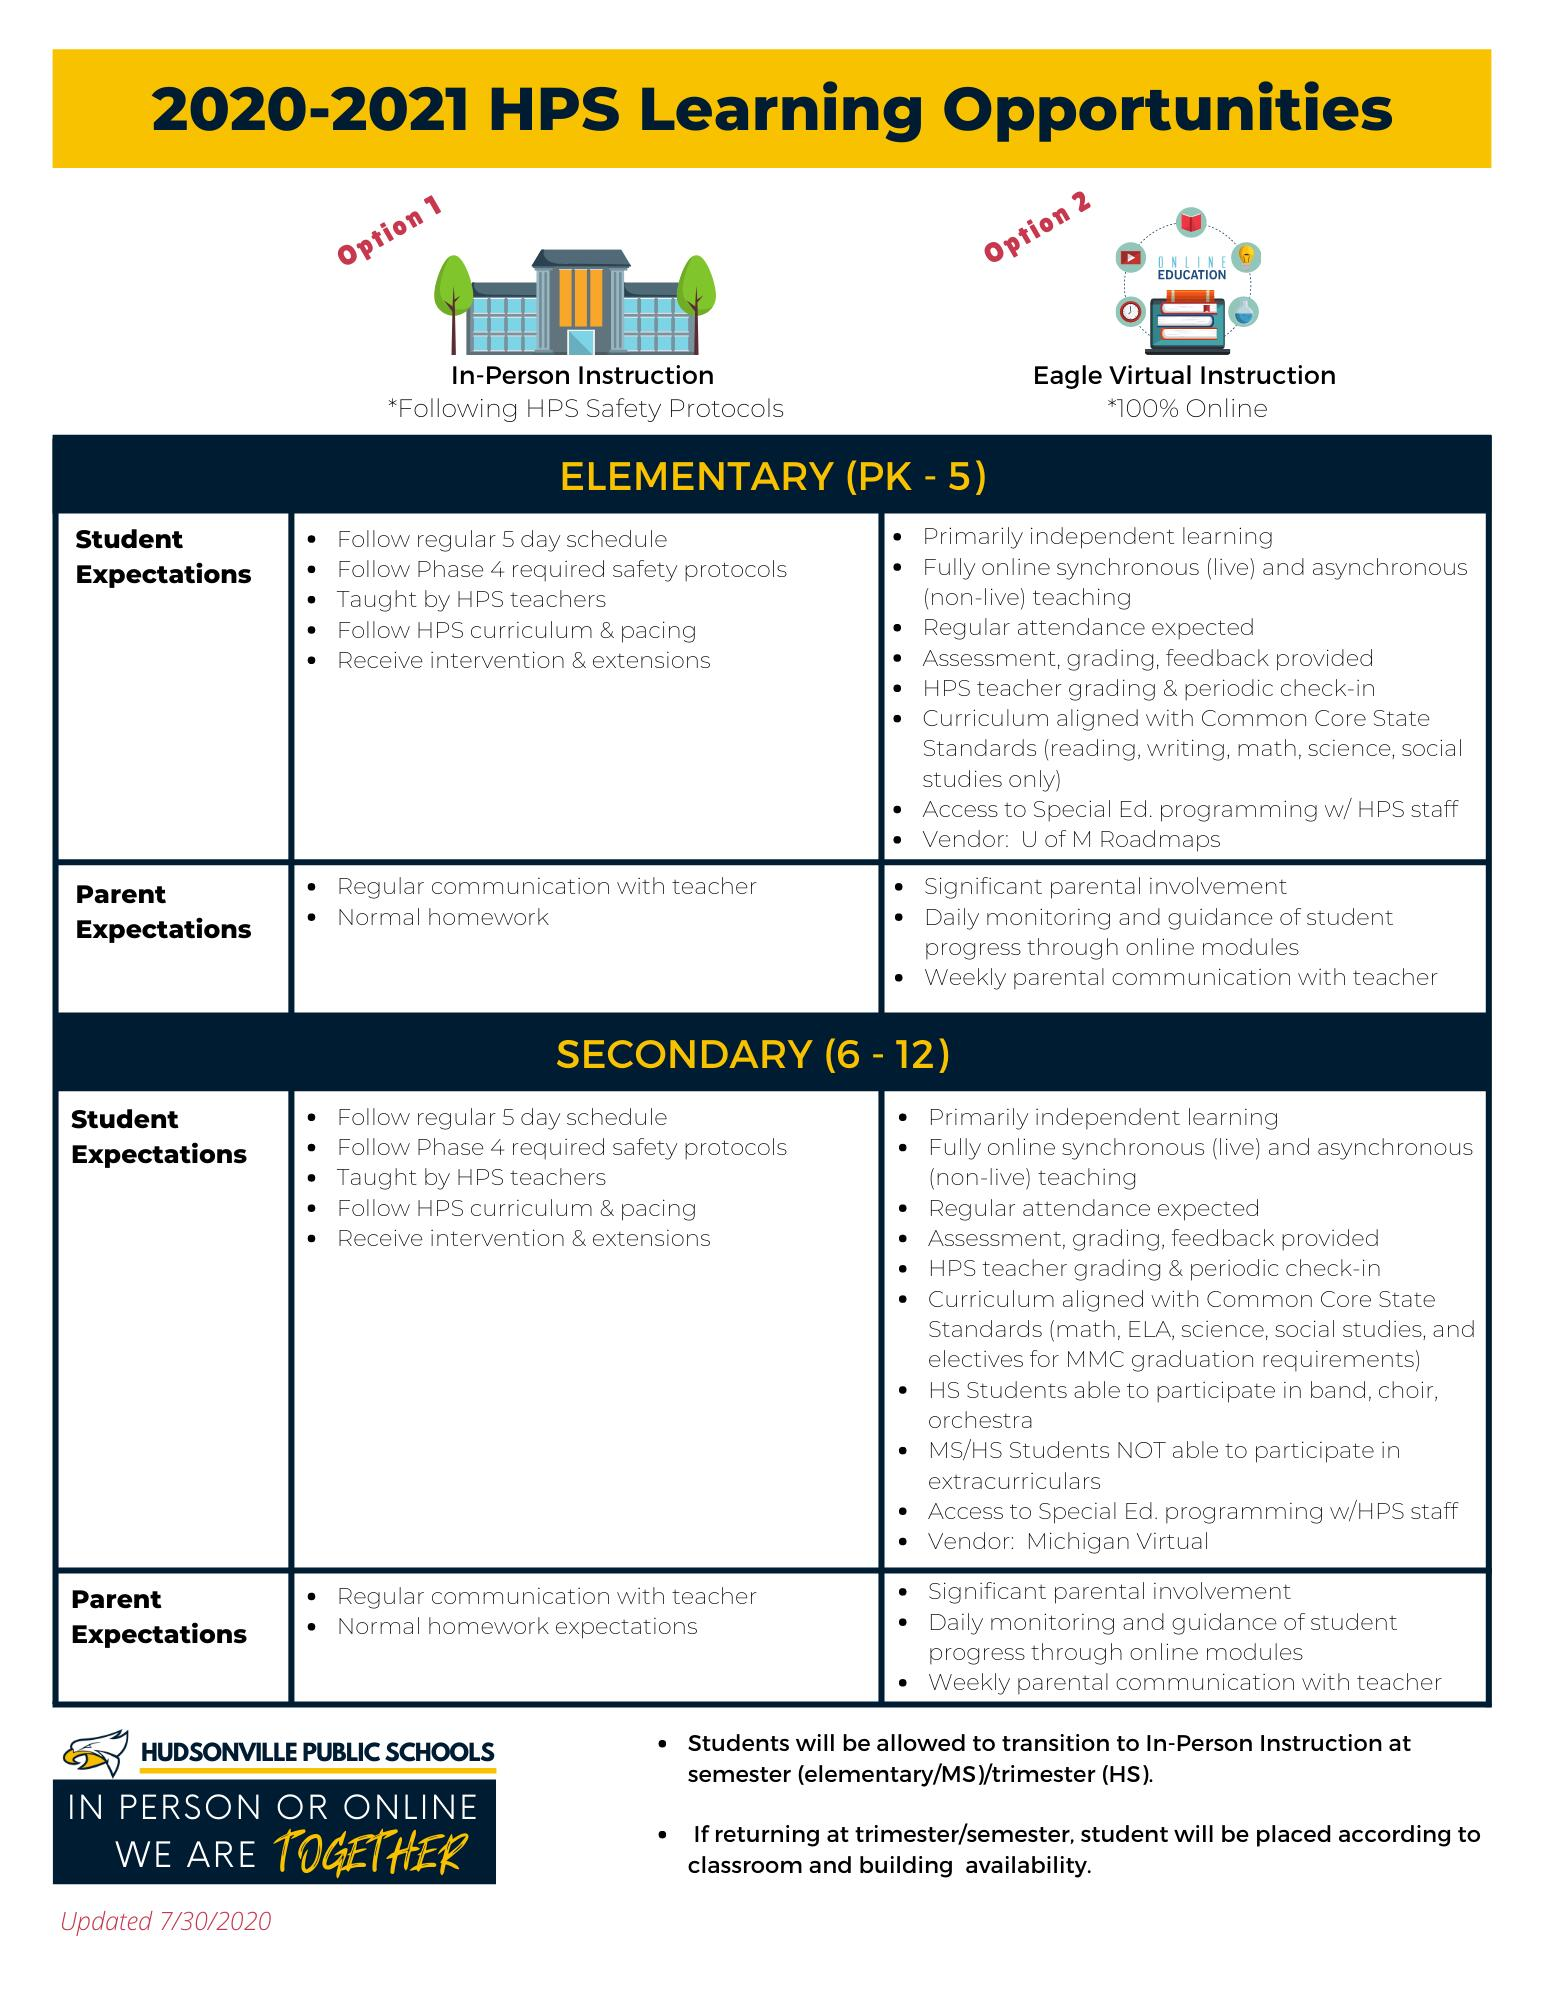 2020-2021 Hudsonville Learning Opportunities document